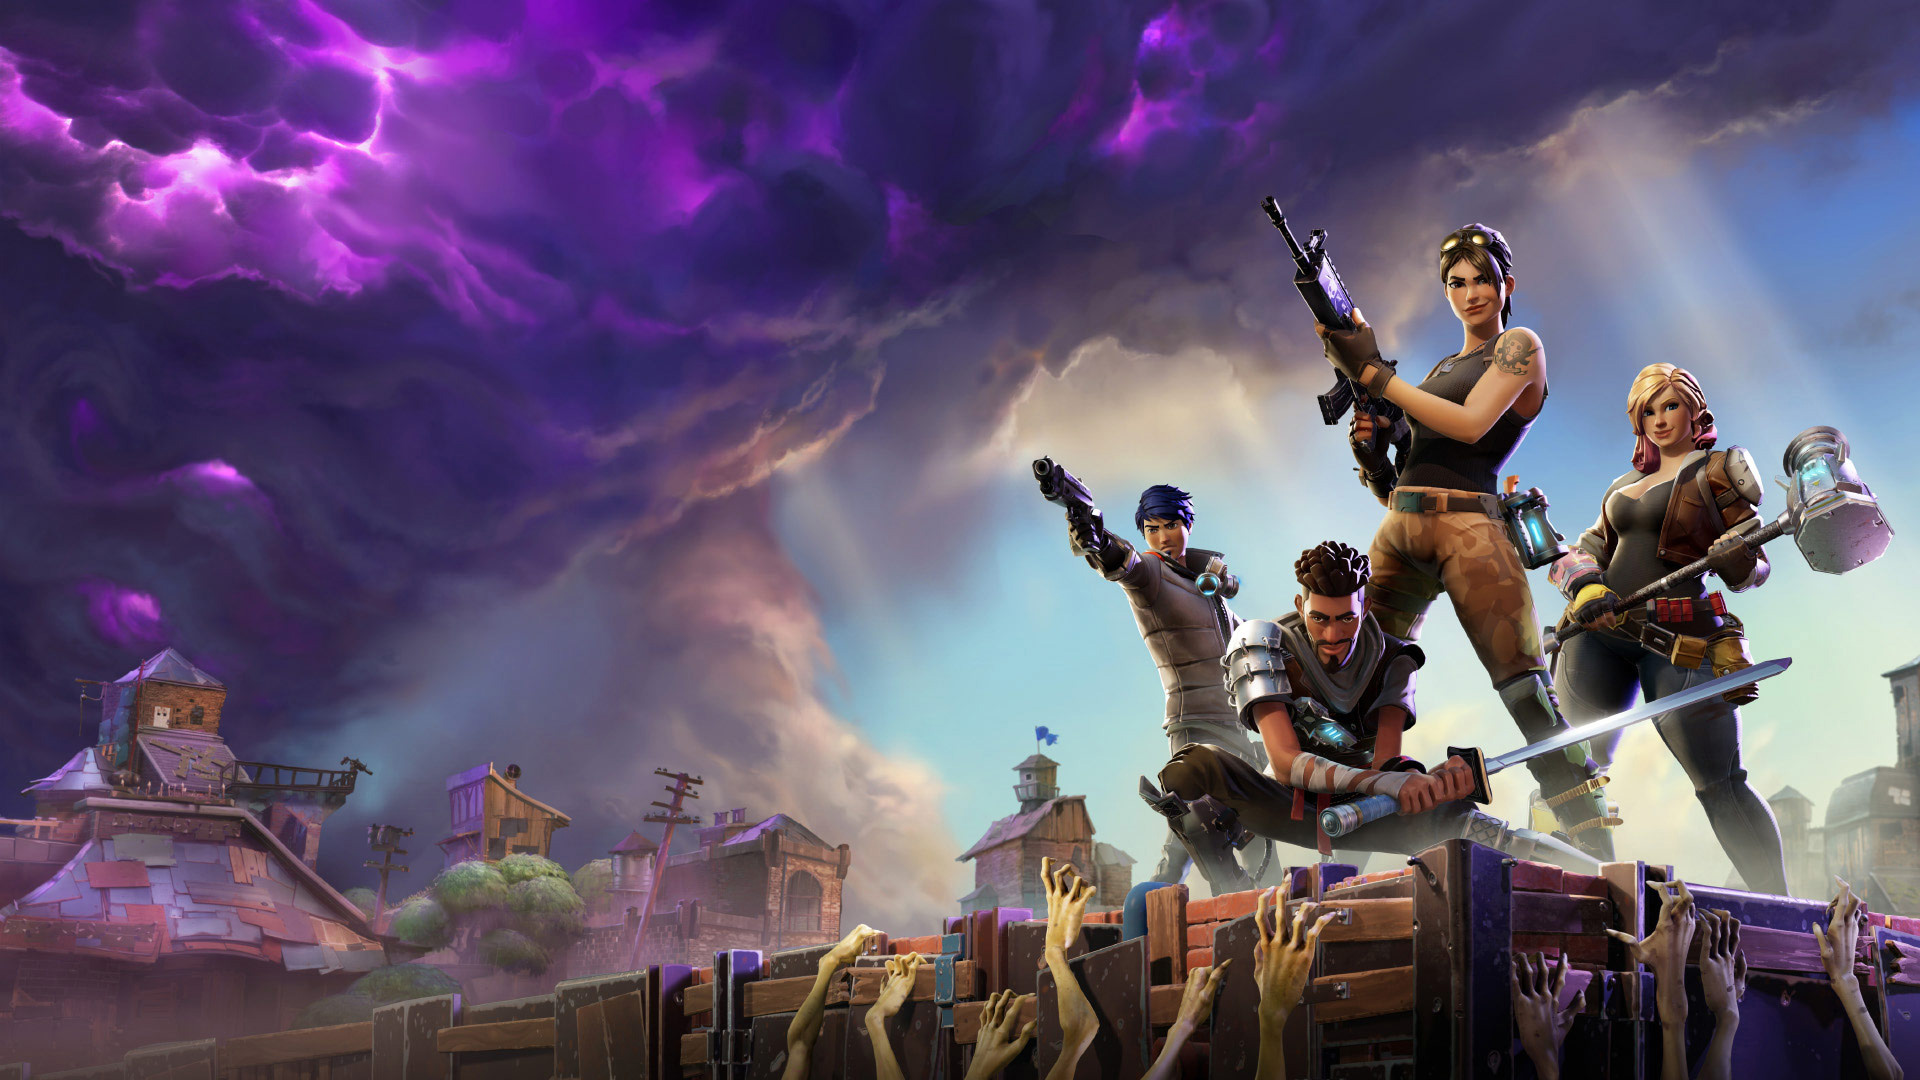 Epic Has Outplayed Apple to Date – Will Apple Catch Up and Reset the Game?